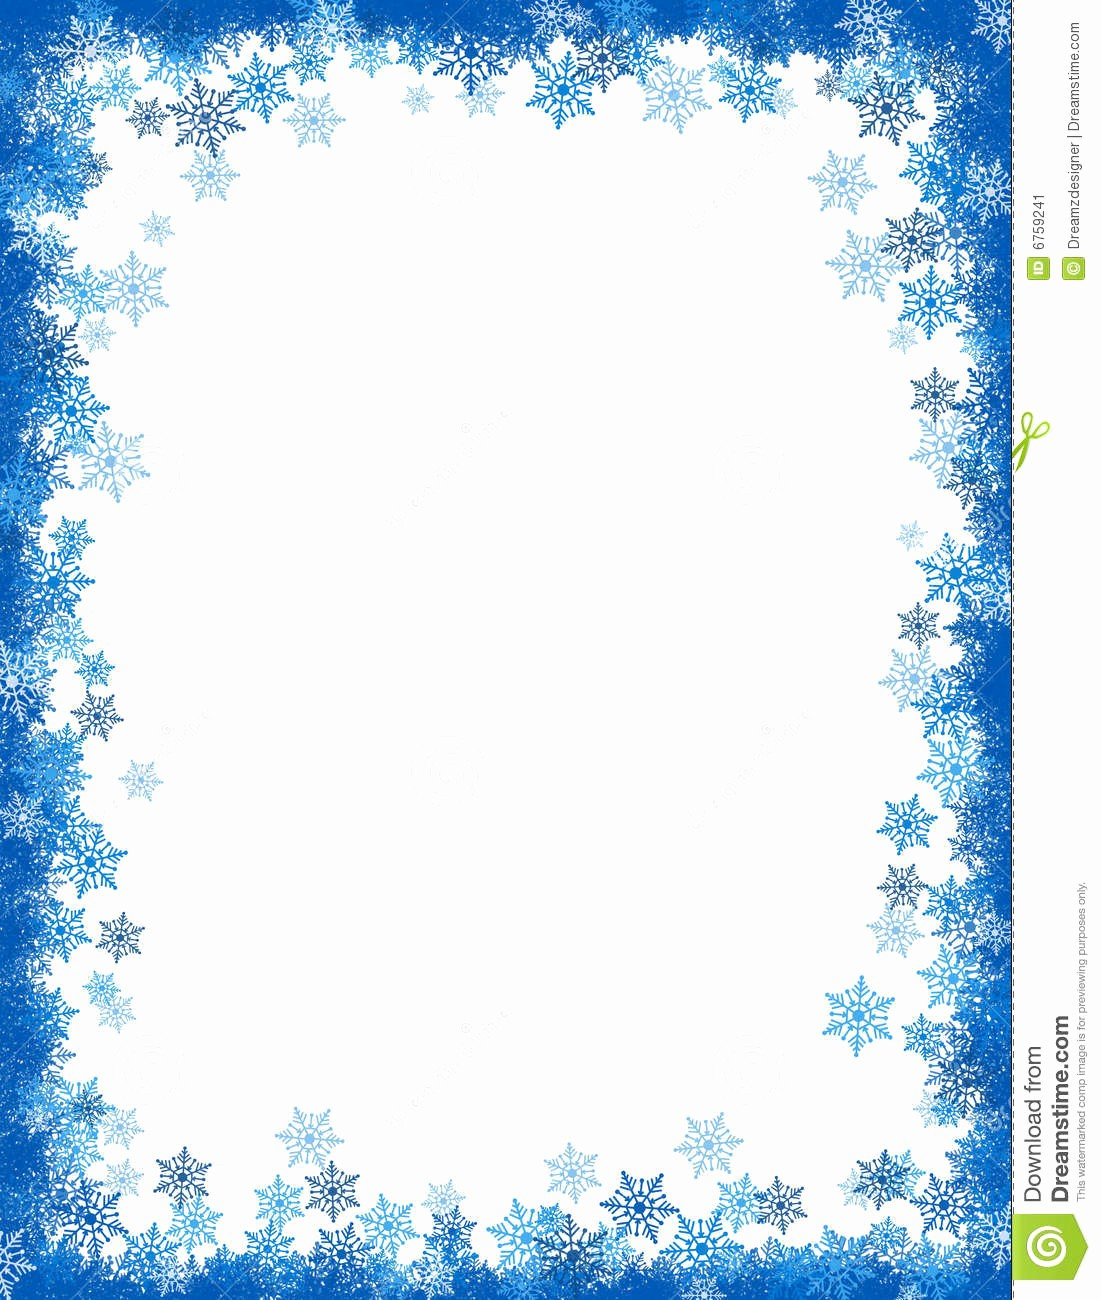 Christmas Background Images for Word Lovely Christmas Borders Word Doc – Halloween & Holidays Wizard